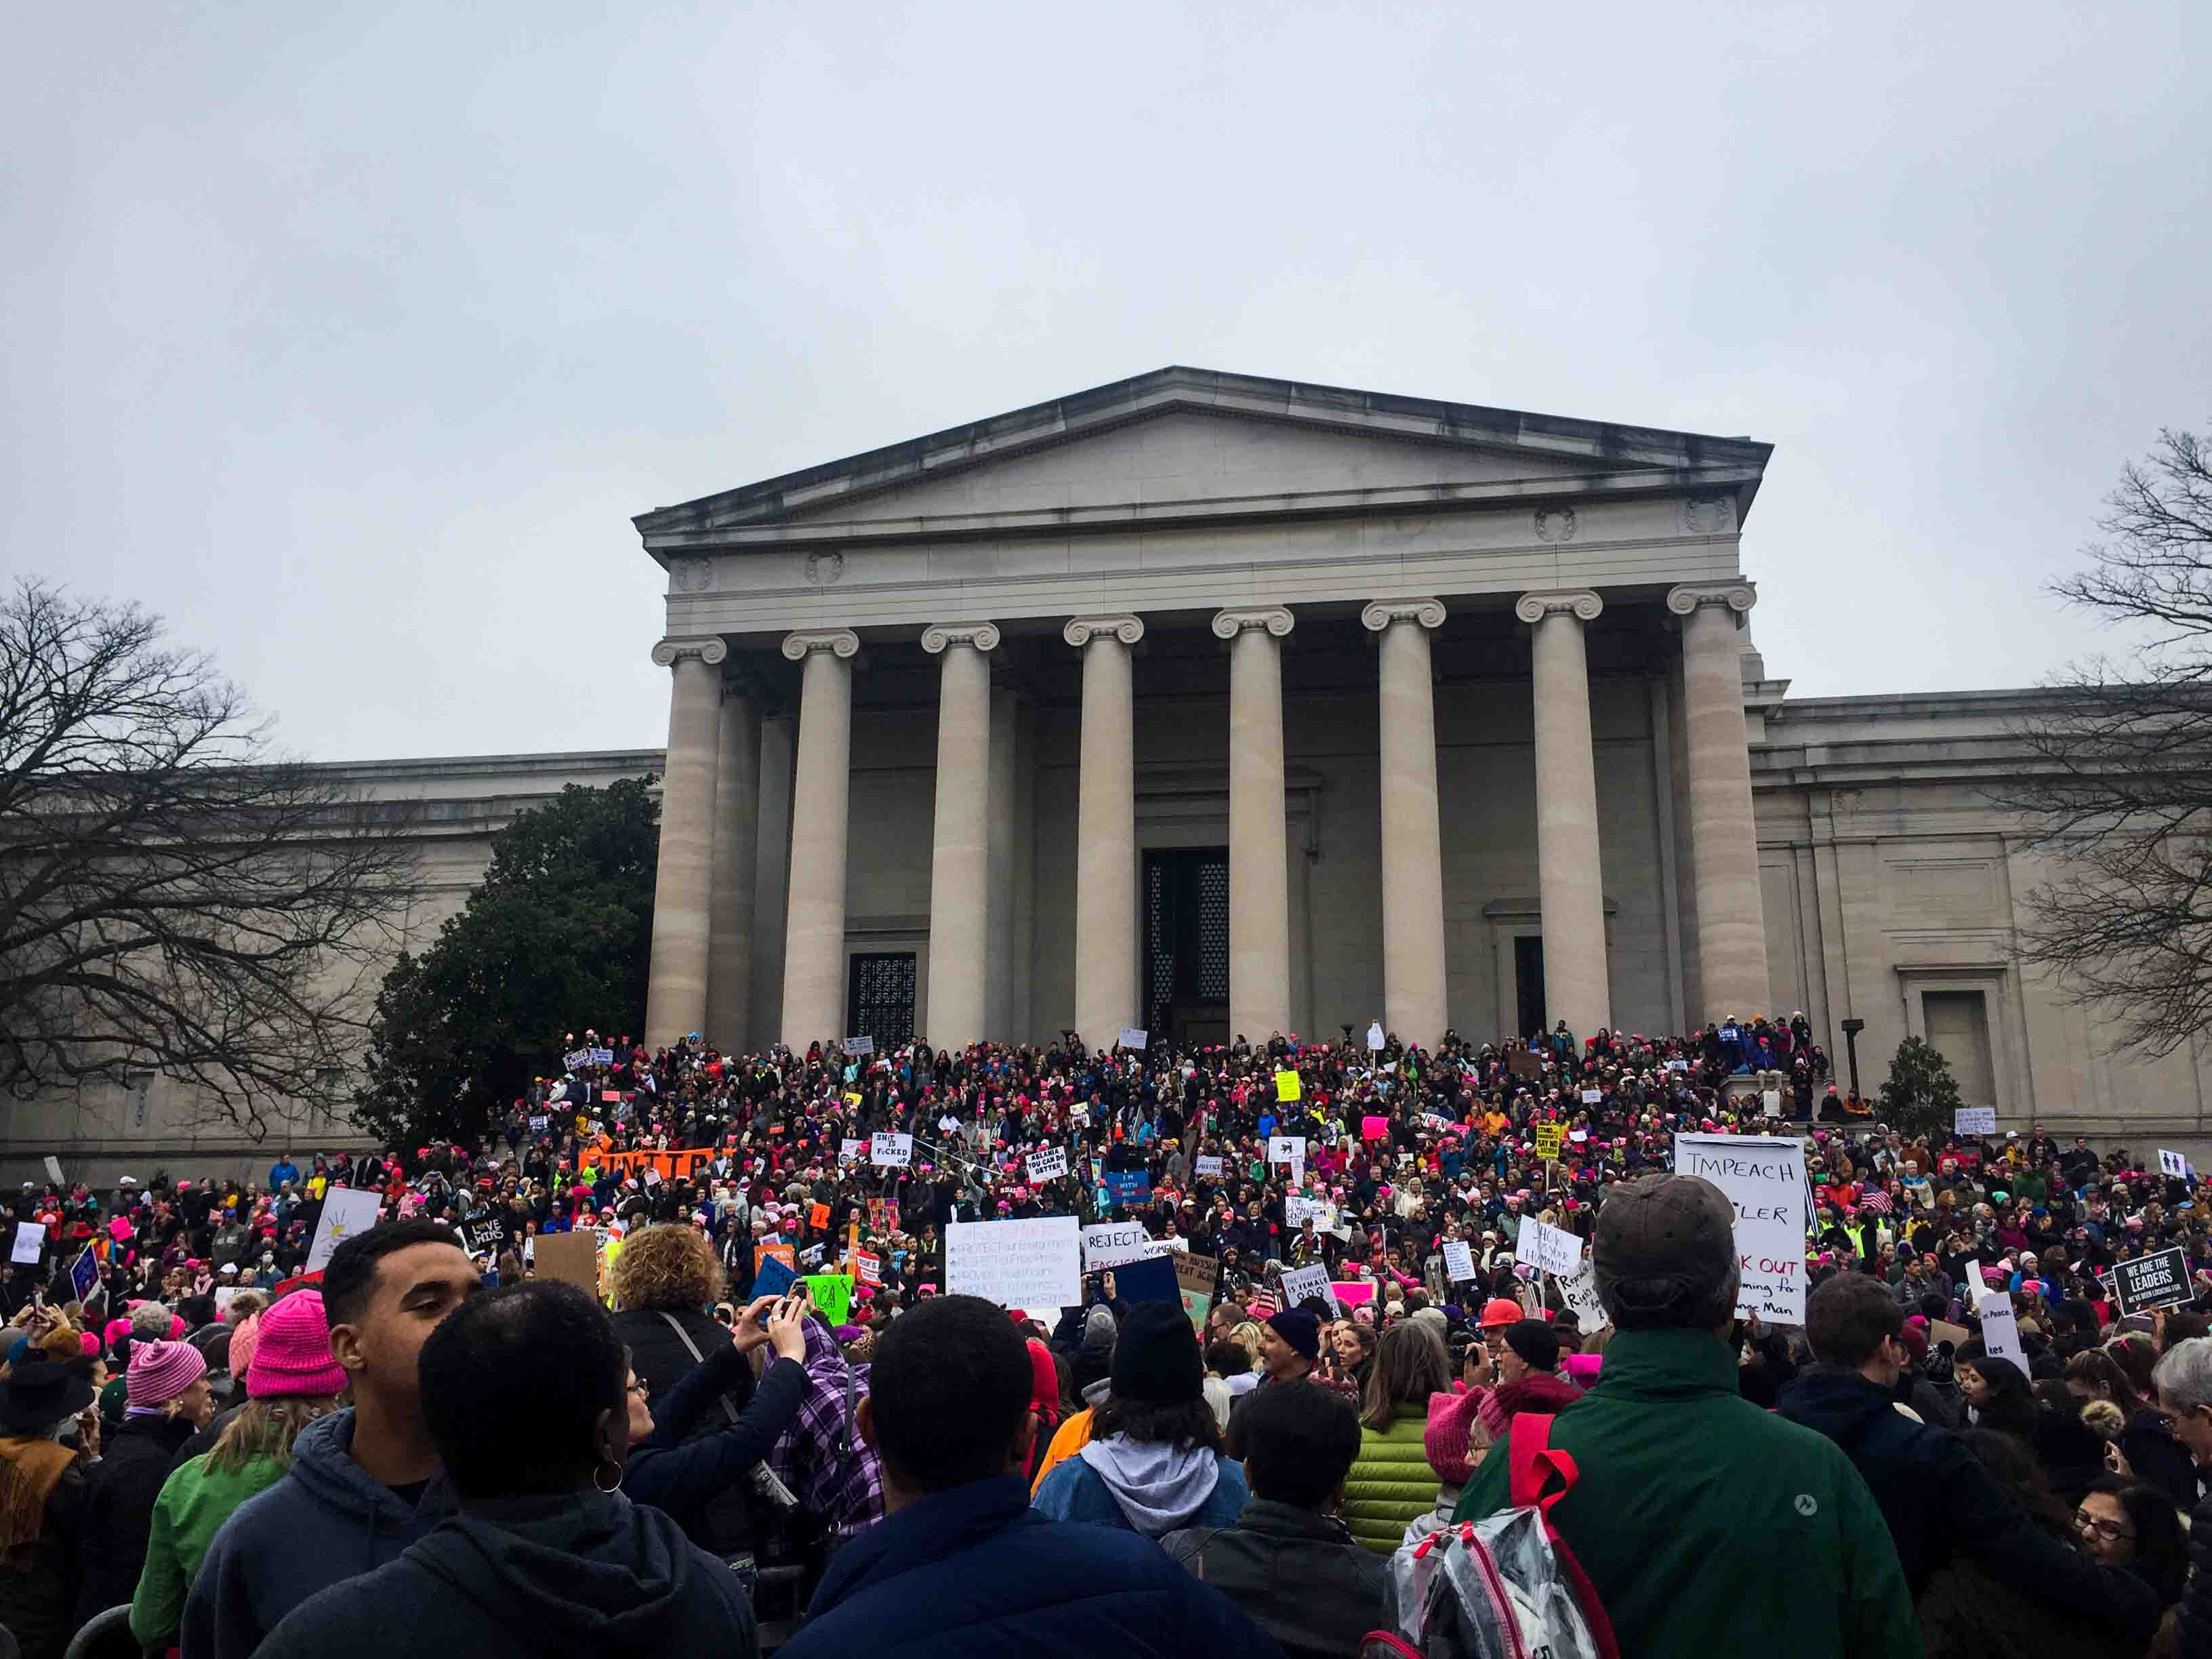 Protesters marching in Washington as part of the Women's March on Washington.